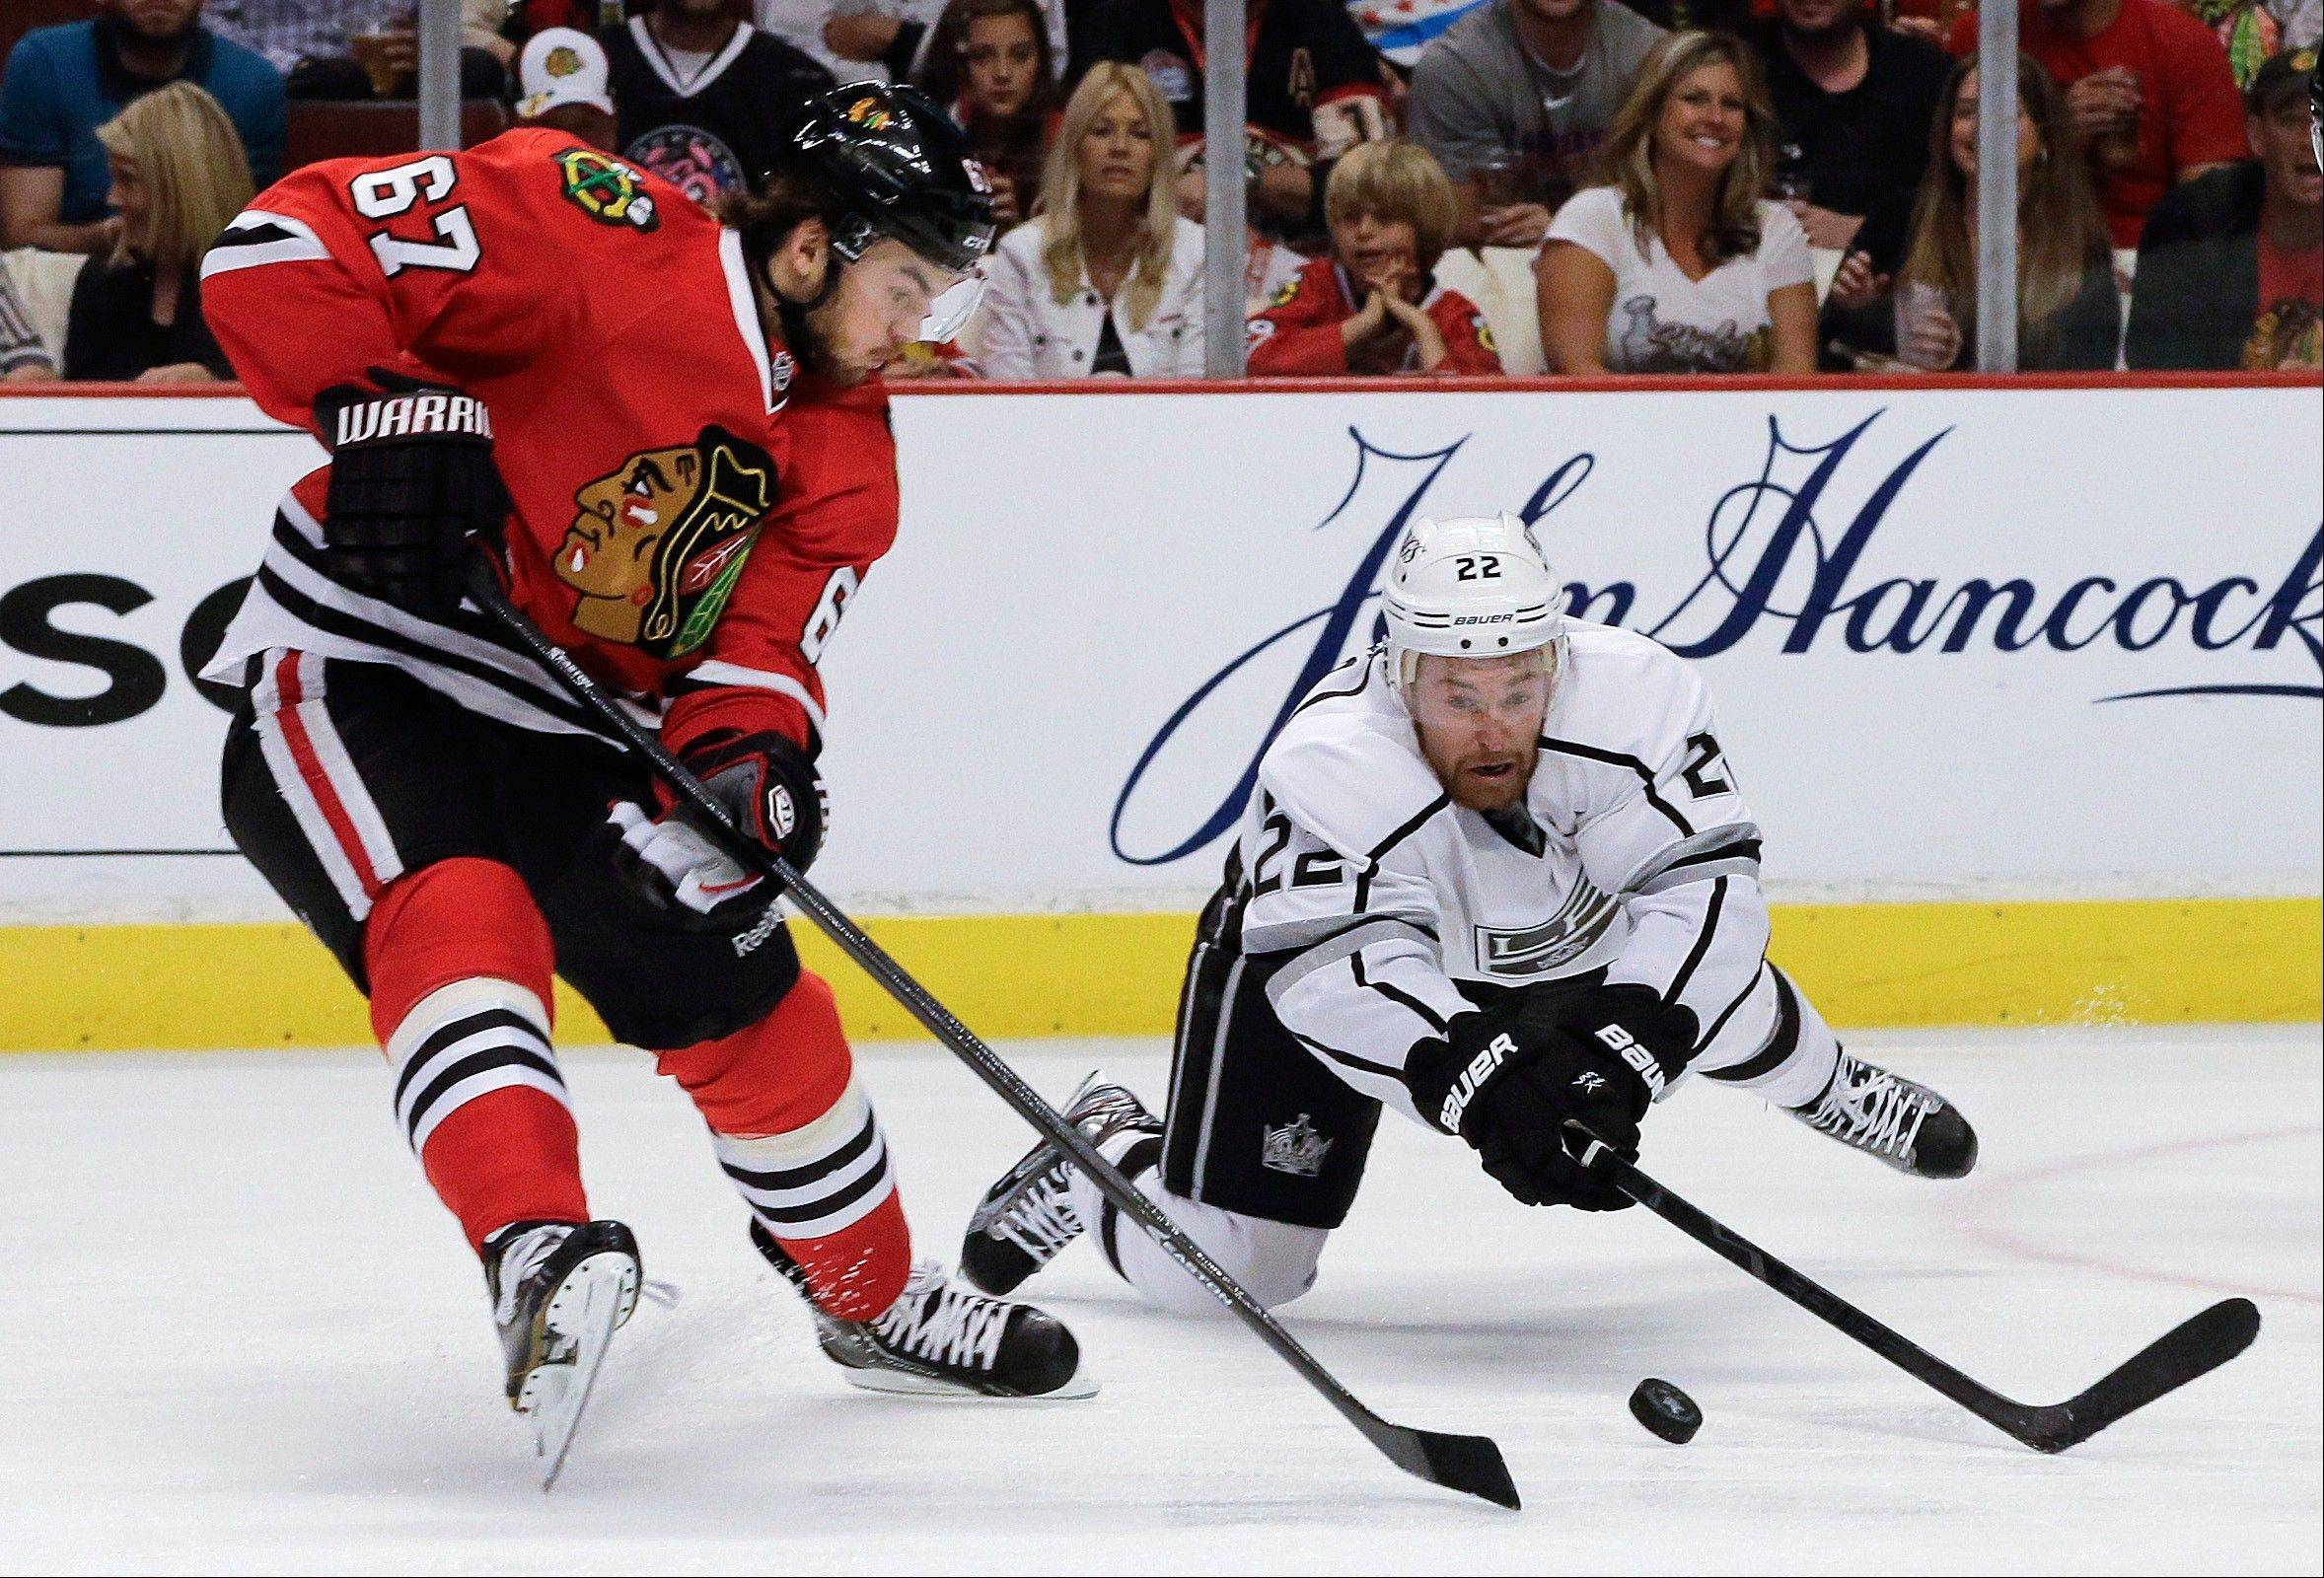 Los Angeles Kings center Trevor Lewis (22) dives for the puck against Chicago Blackhawks center Michael Frolik (67) during the second period of Game 1 of the NHL hockey Stanley Cup Western Conference finals, Saturday, June 1, in Chicago.